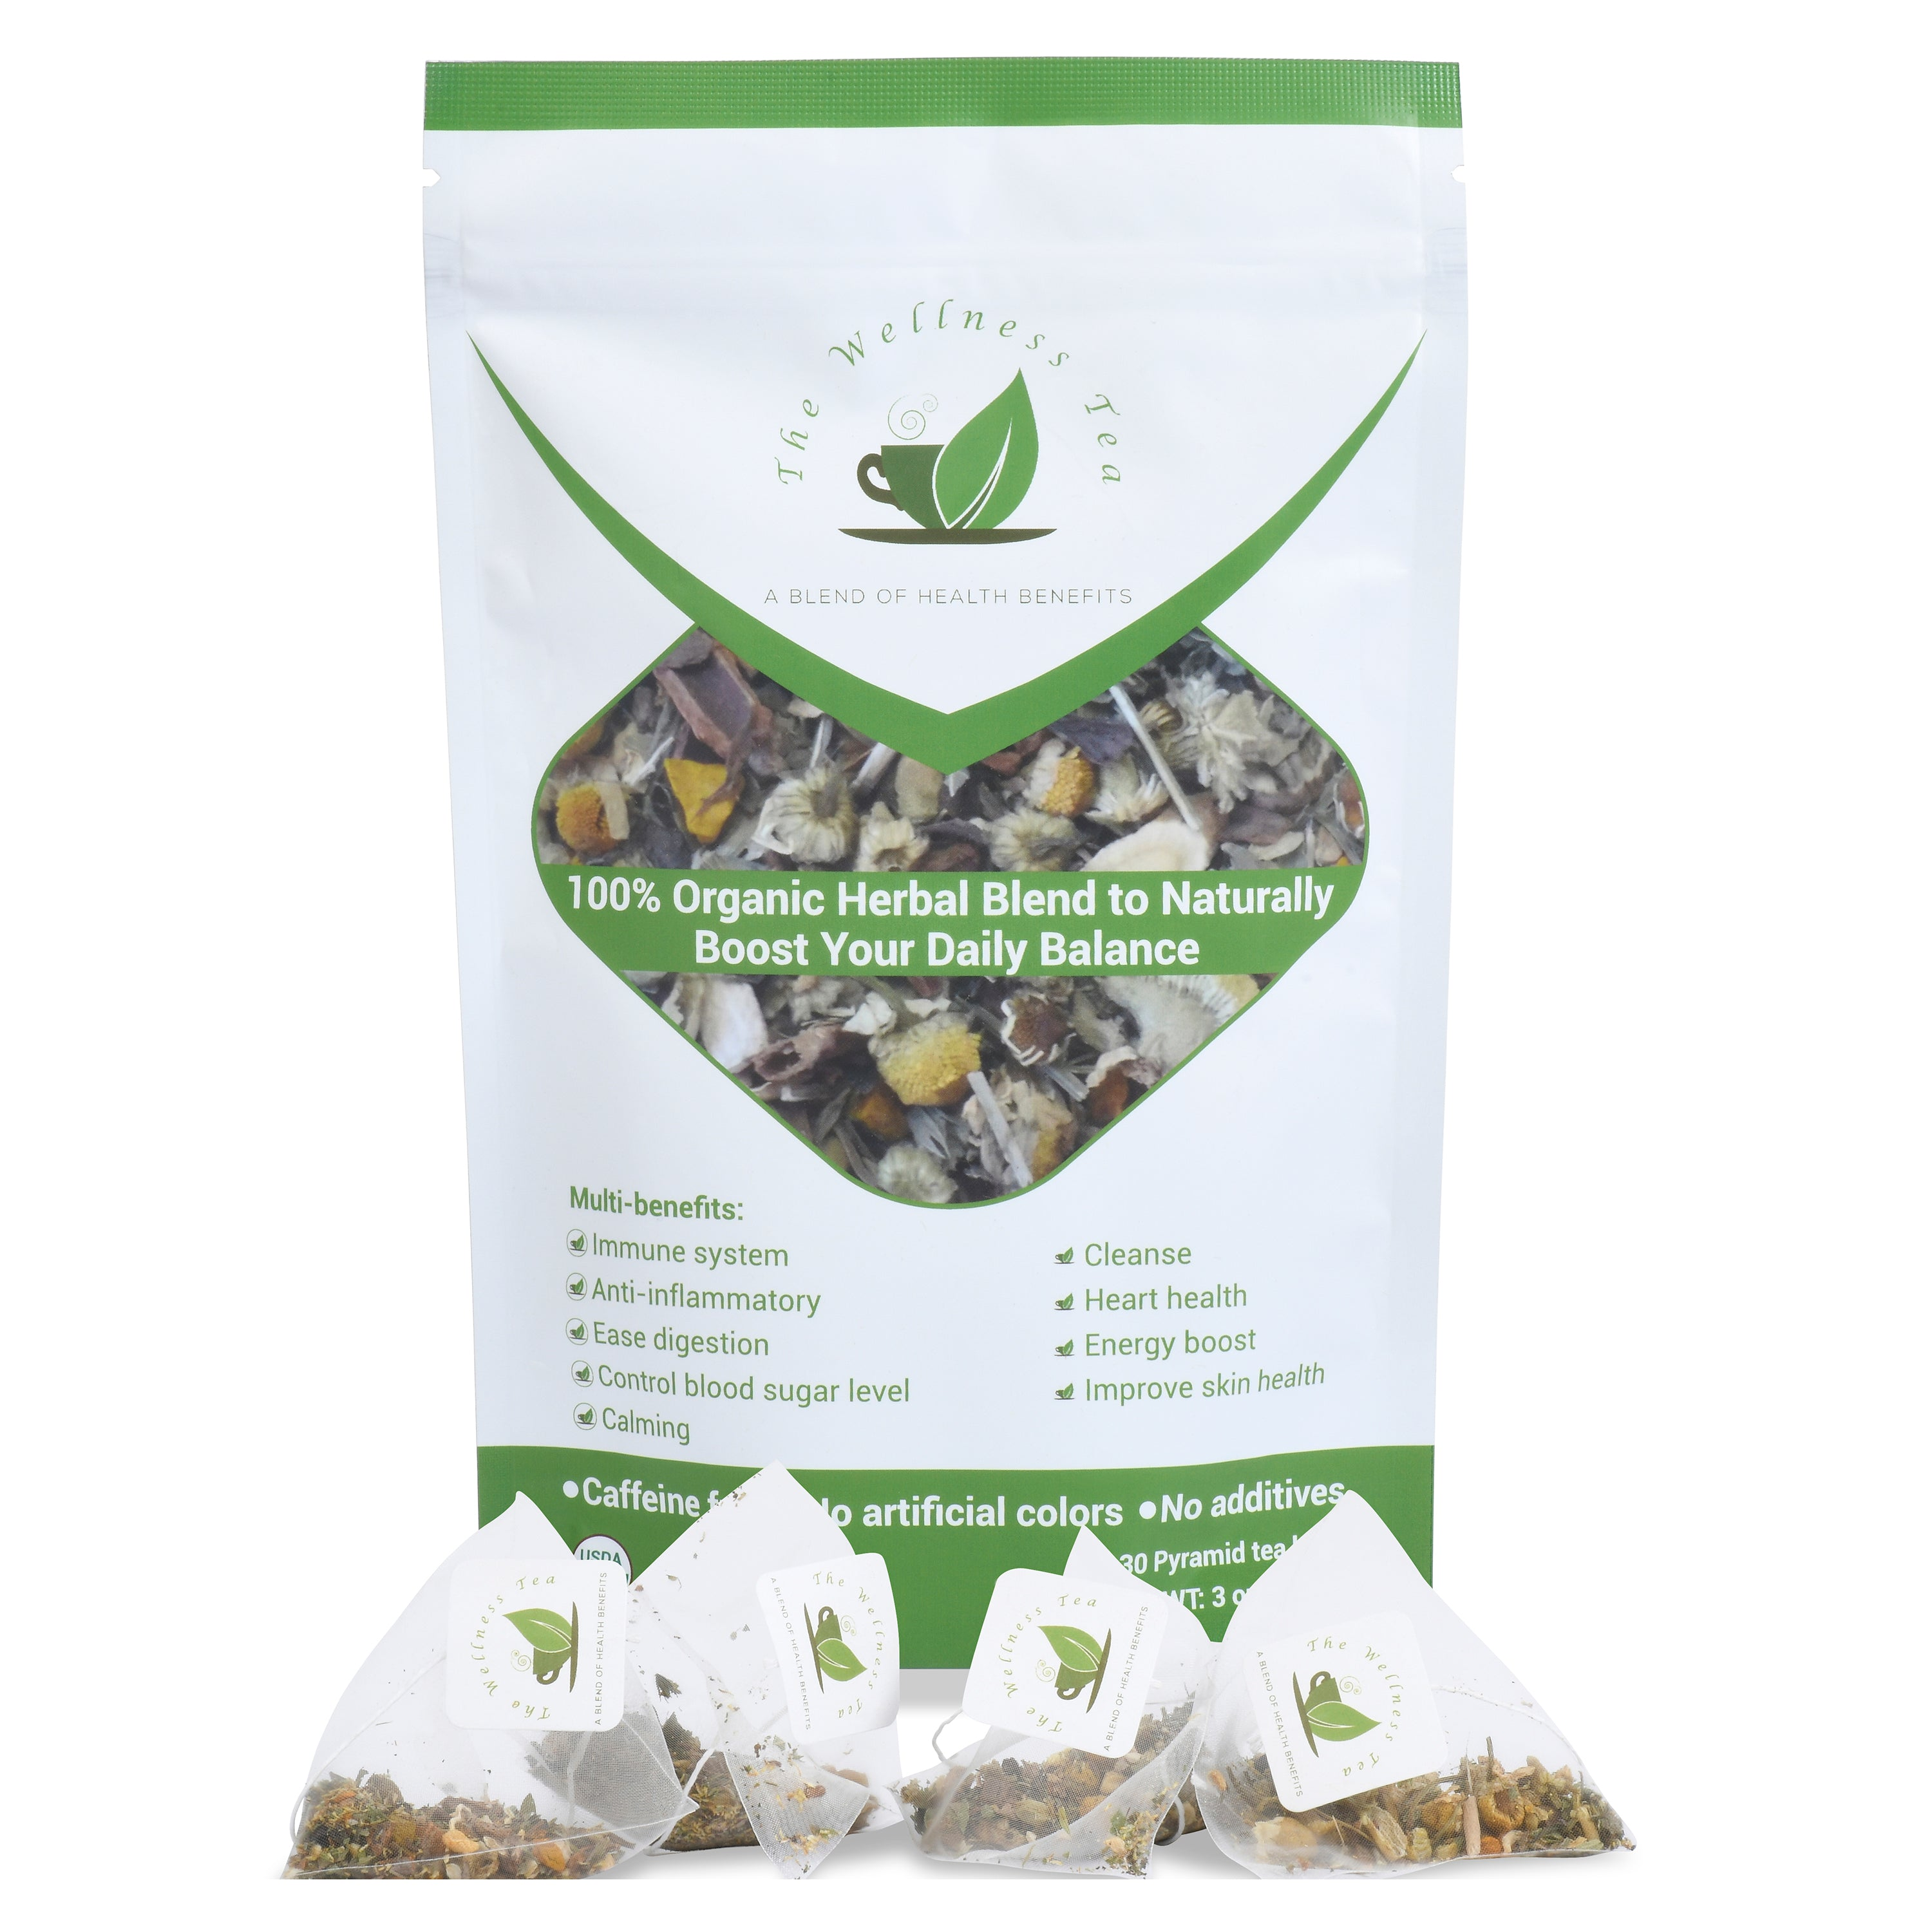 The Wellness Tea - 100% Organic Herbal Tea Blend - 30 Pyramid Tea Bags